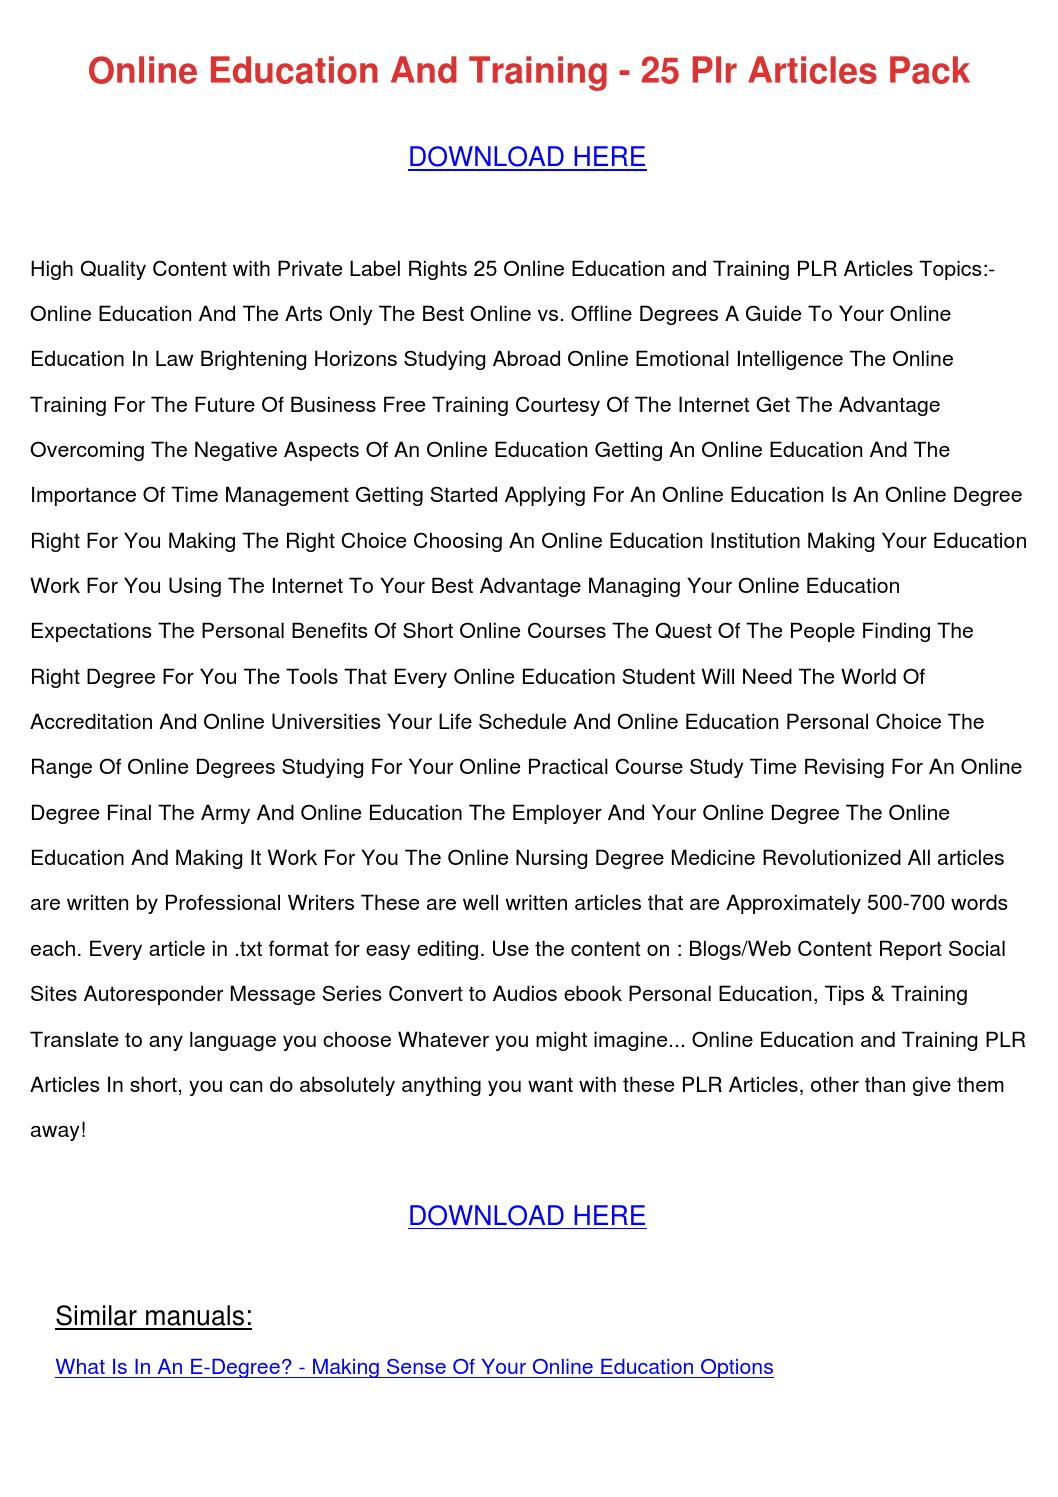 Online Education And Training 25 Plr Articles by SammieRyder - issuu